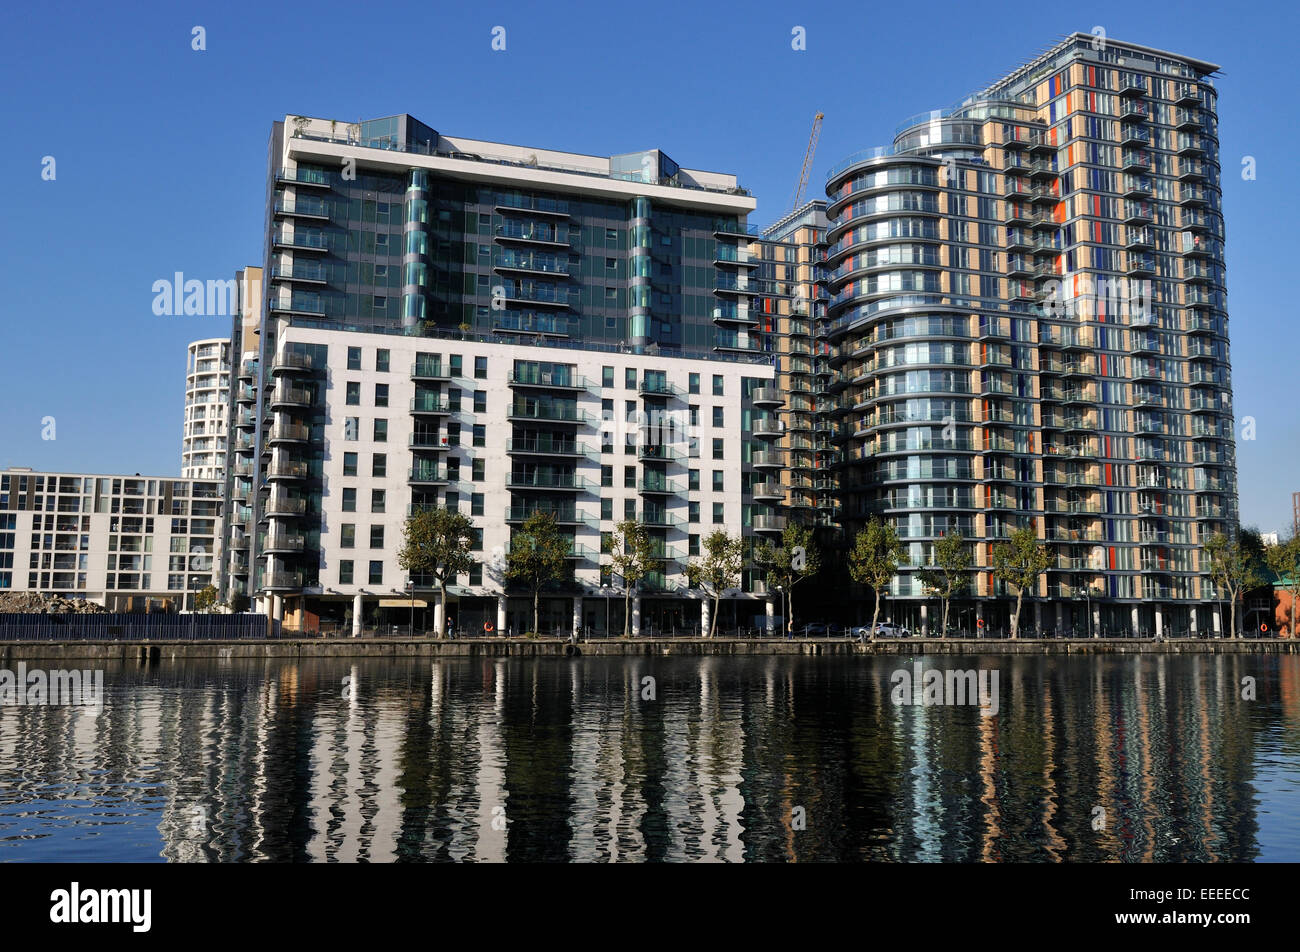 https://c8.alamy.com/comp/EEEECC/high-rise-apartment-buildings-31-and-41-millharbour-in-london-canary-EEEECC.jpg